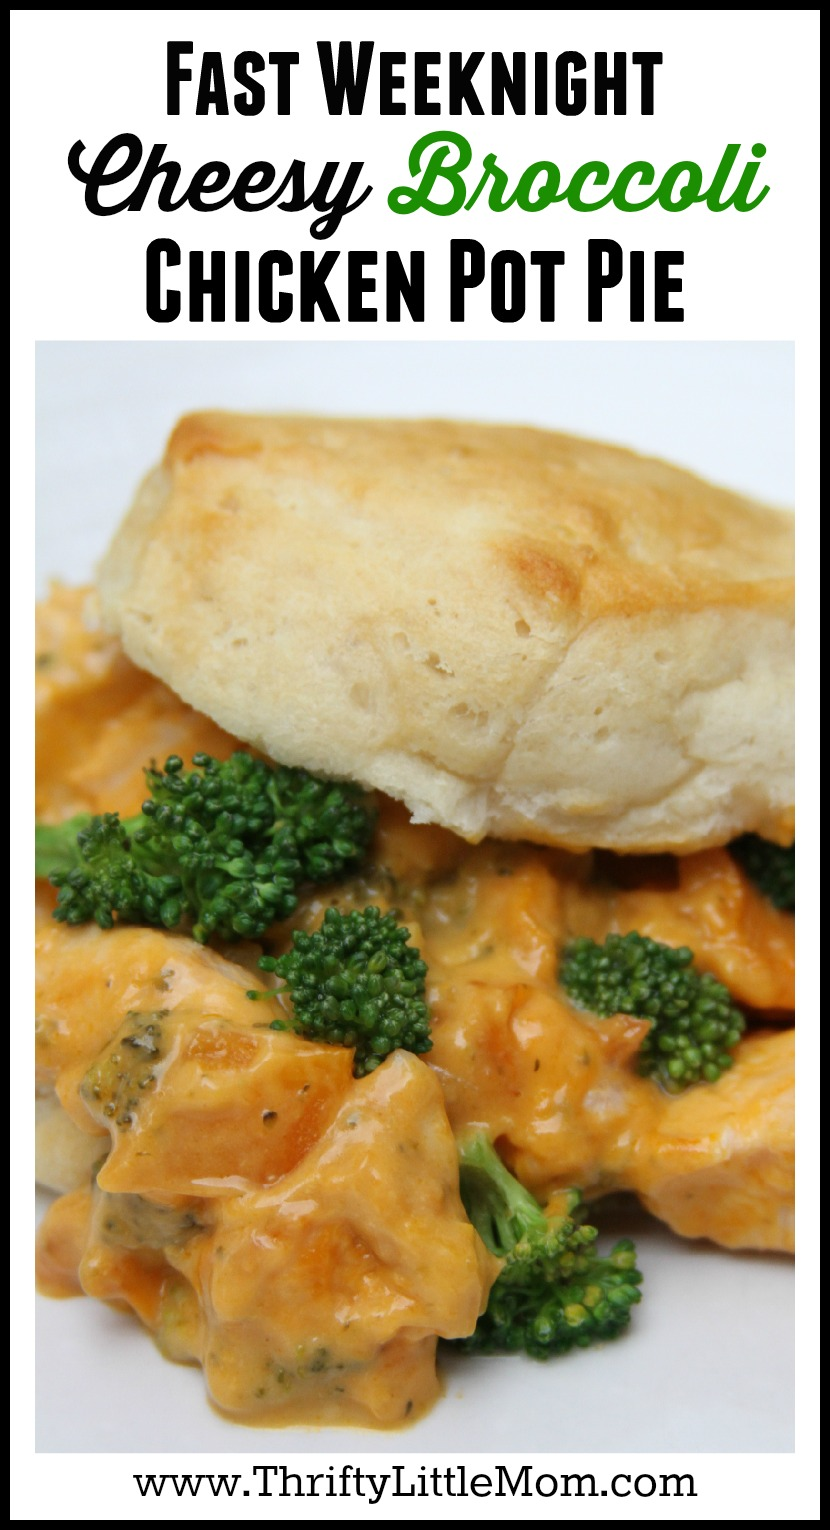 Fast Weeknight Cheesy Broccoli Chicken Pot Pie made using Campbell's Oven Sauces. #ad